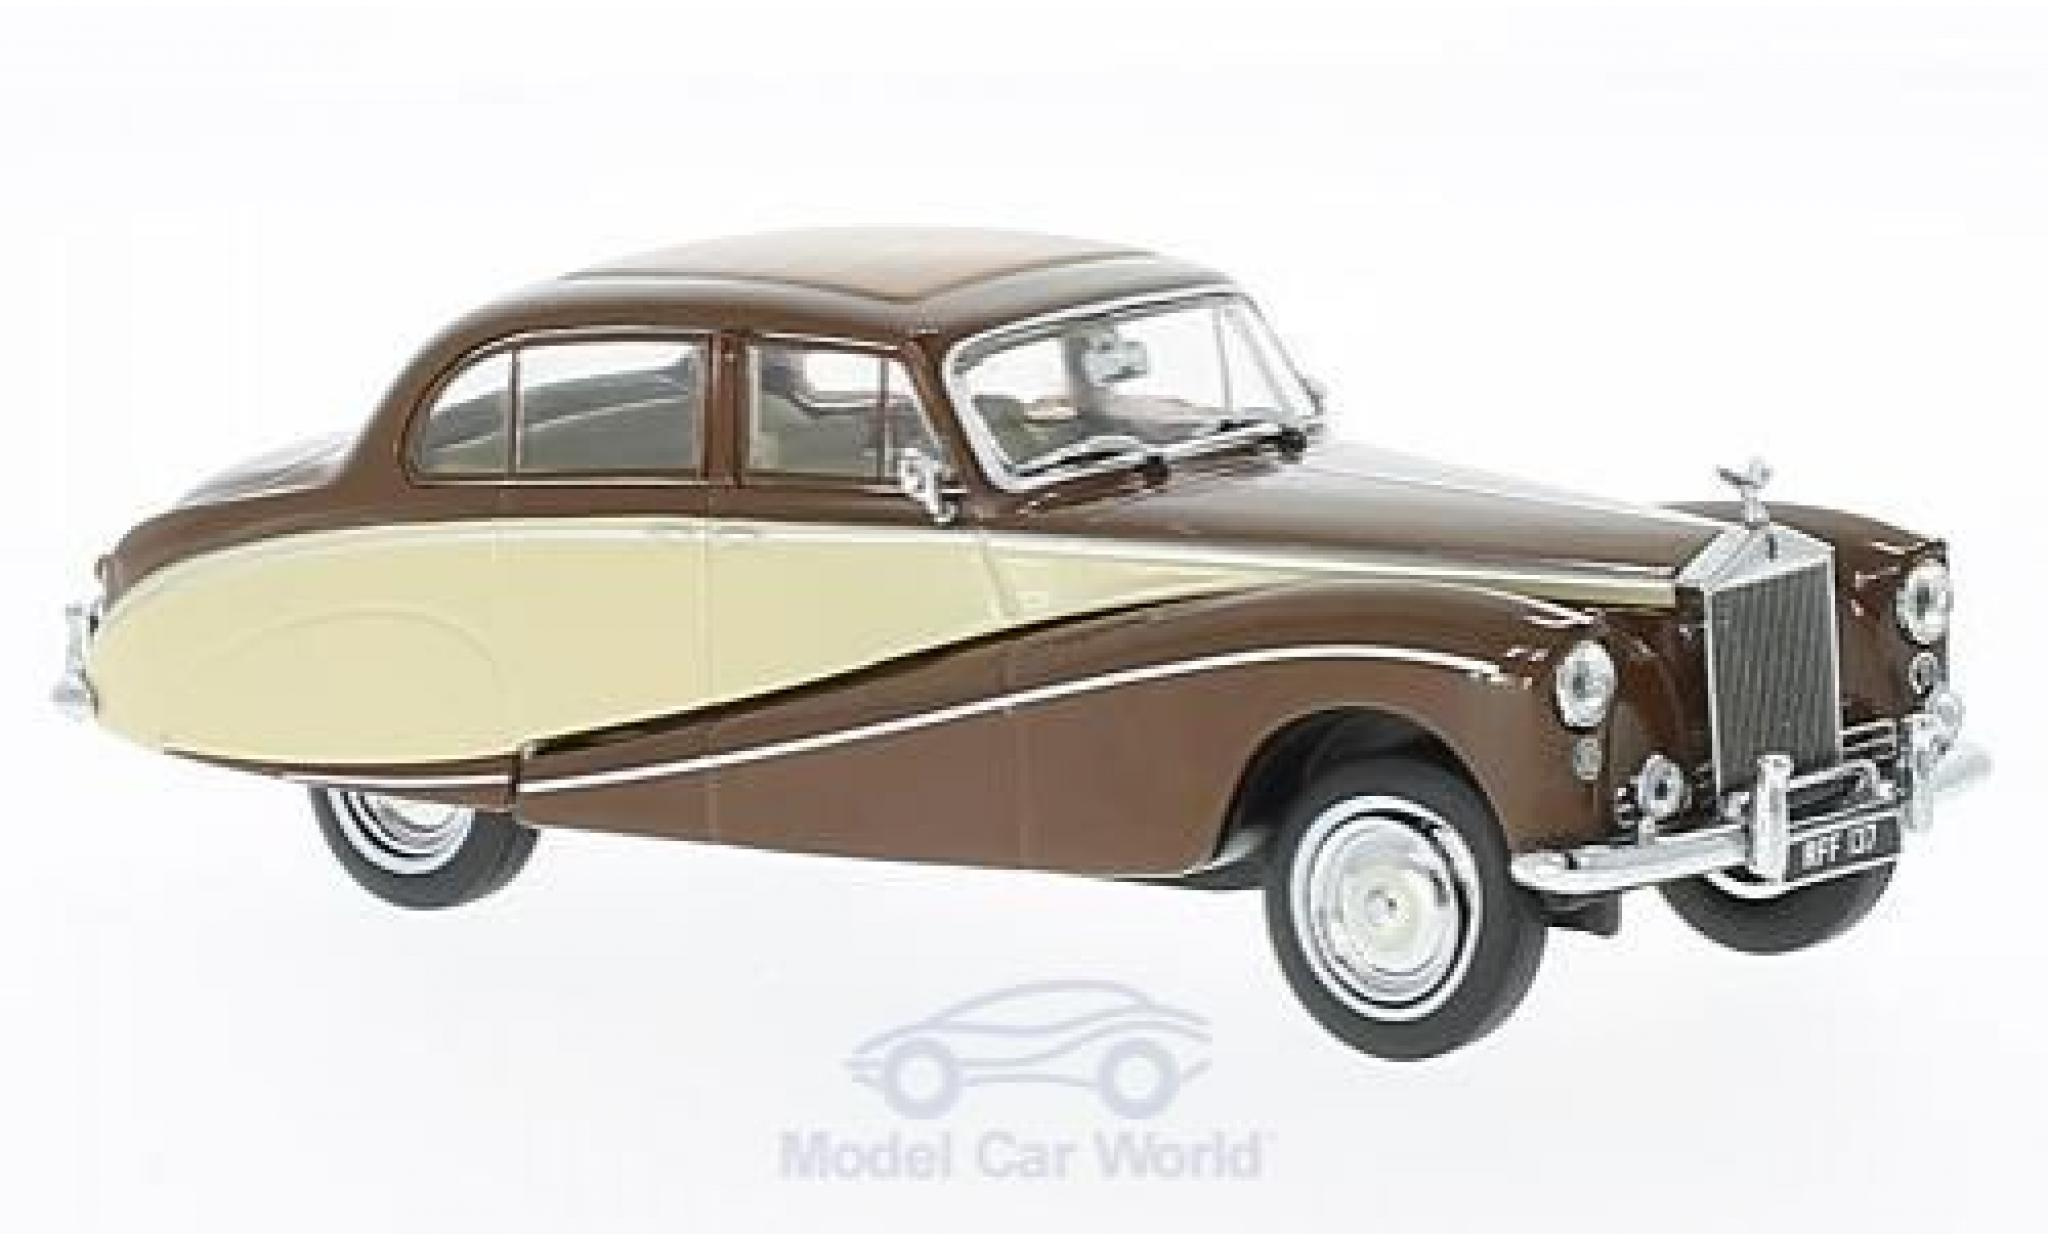 Rolls Royce Silver Cloud 1/43 Oxford Hooper Empress marron/beige RHD